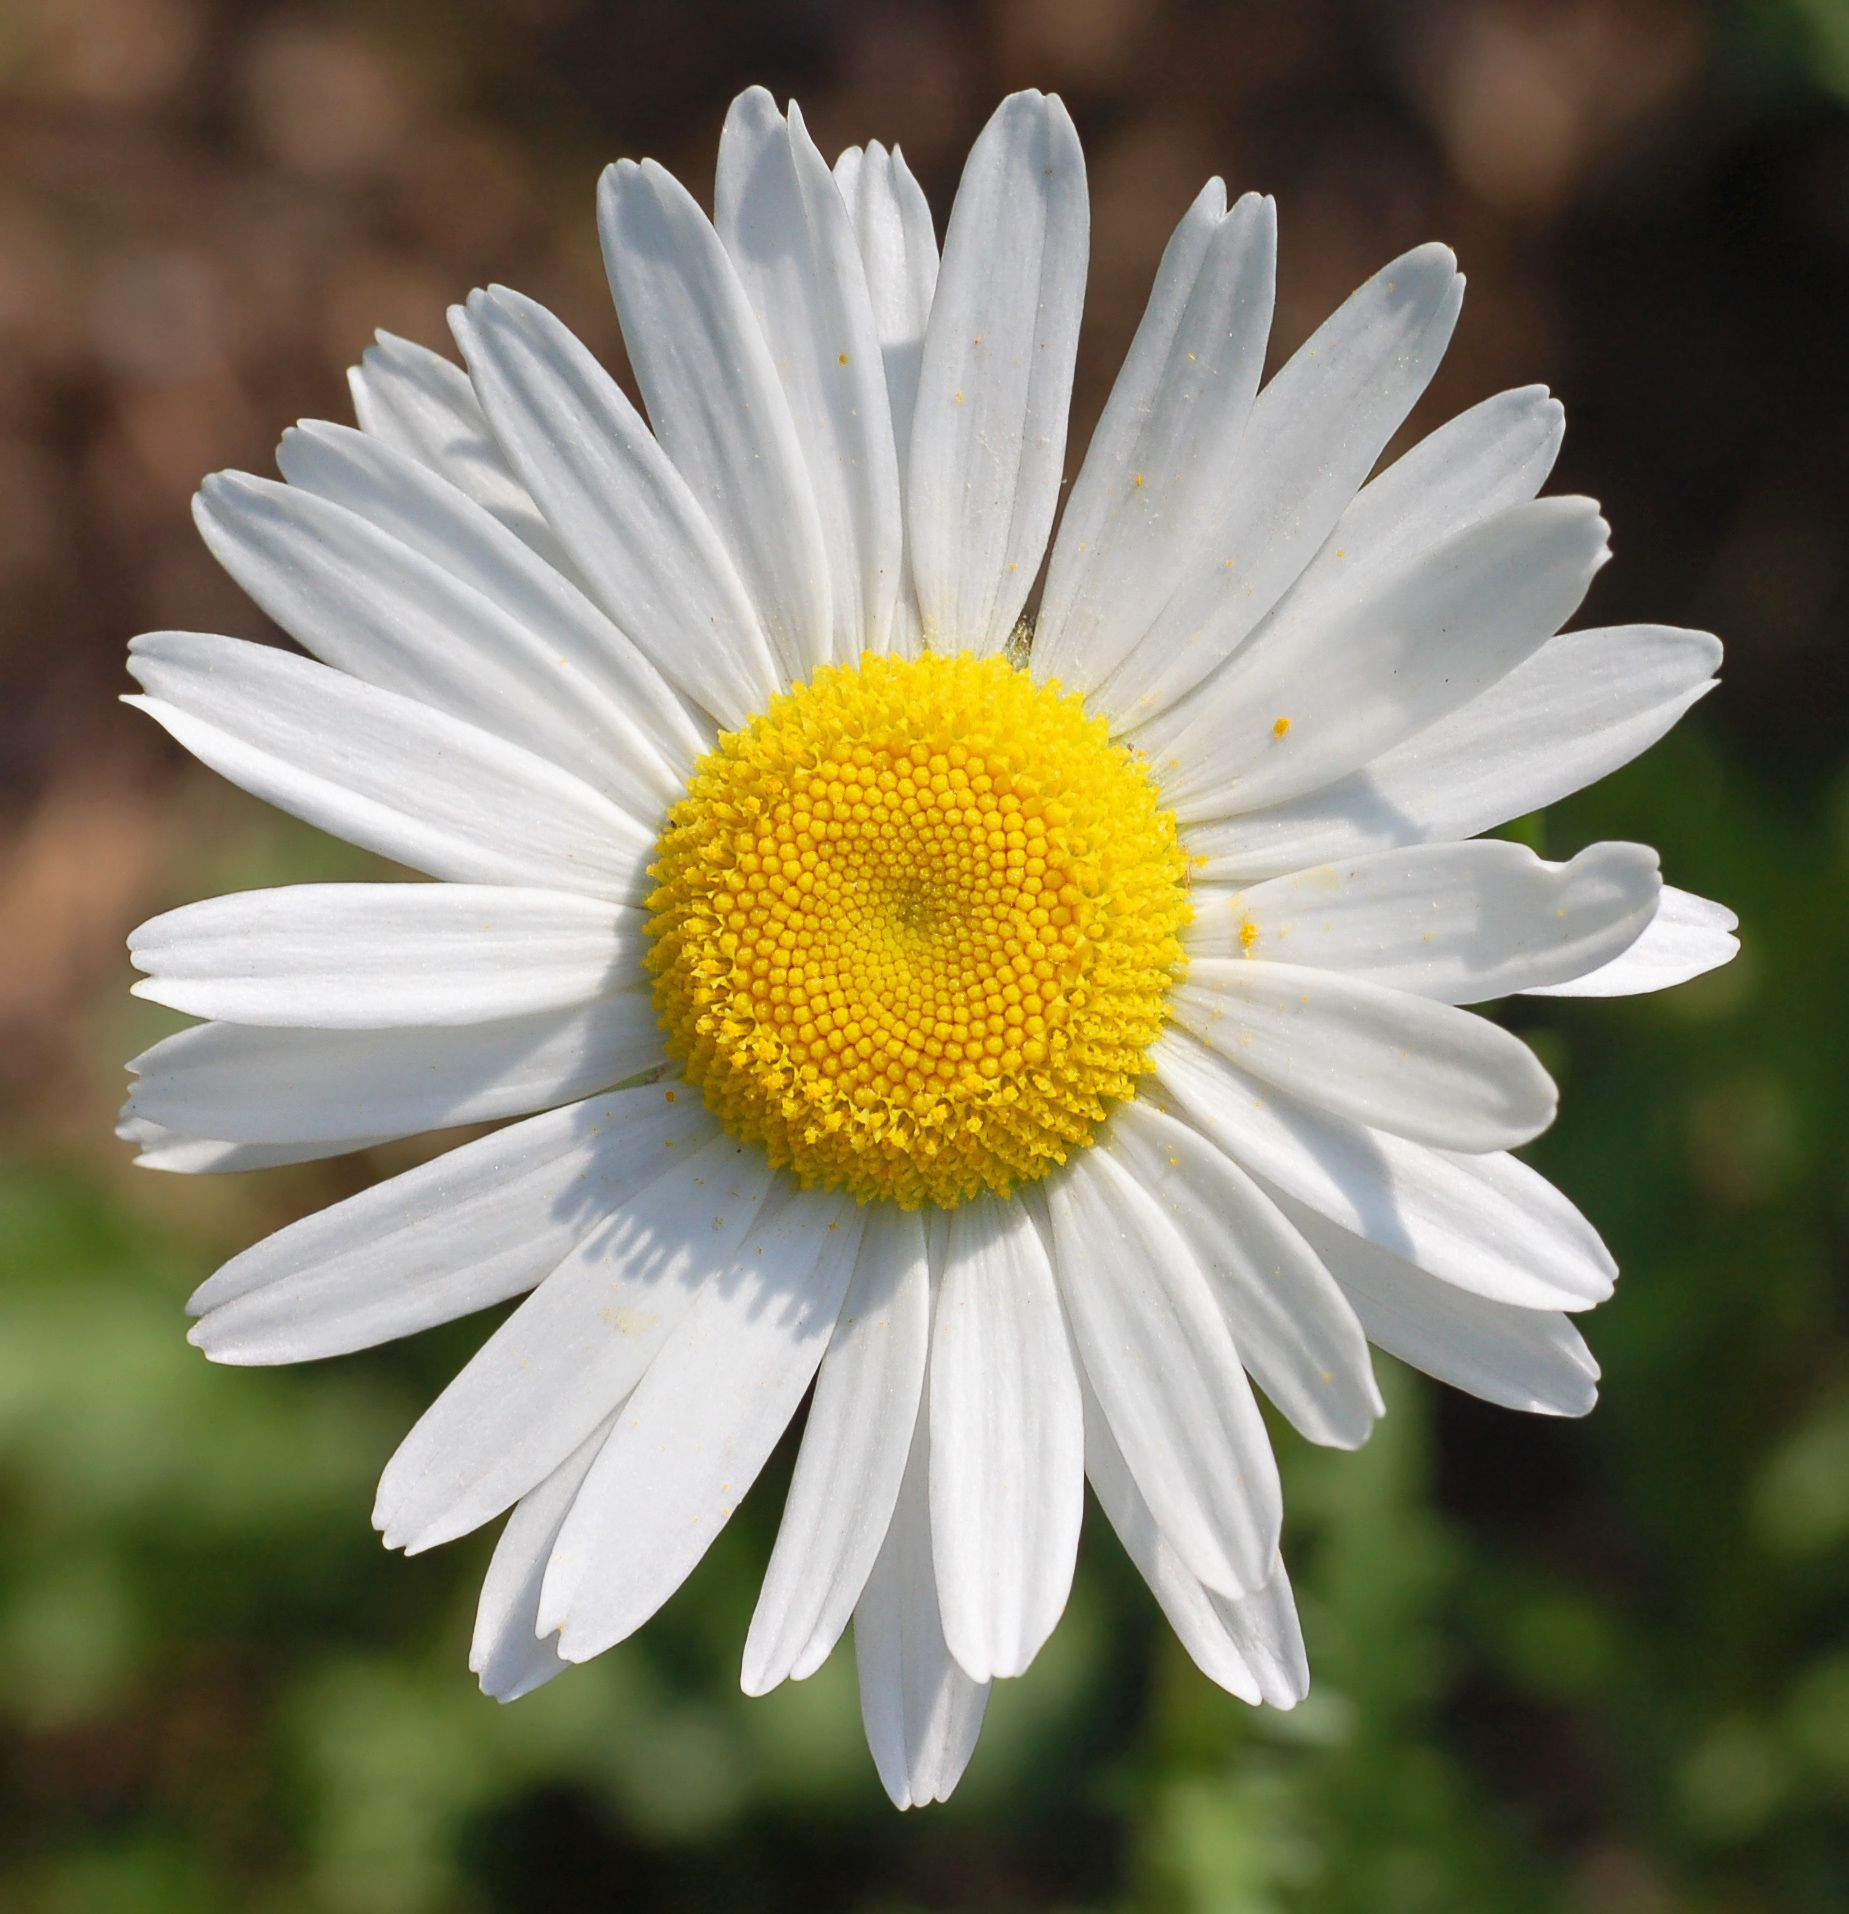 Daisies Are One Of The Worlds Most Popular Flowers And Is Second